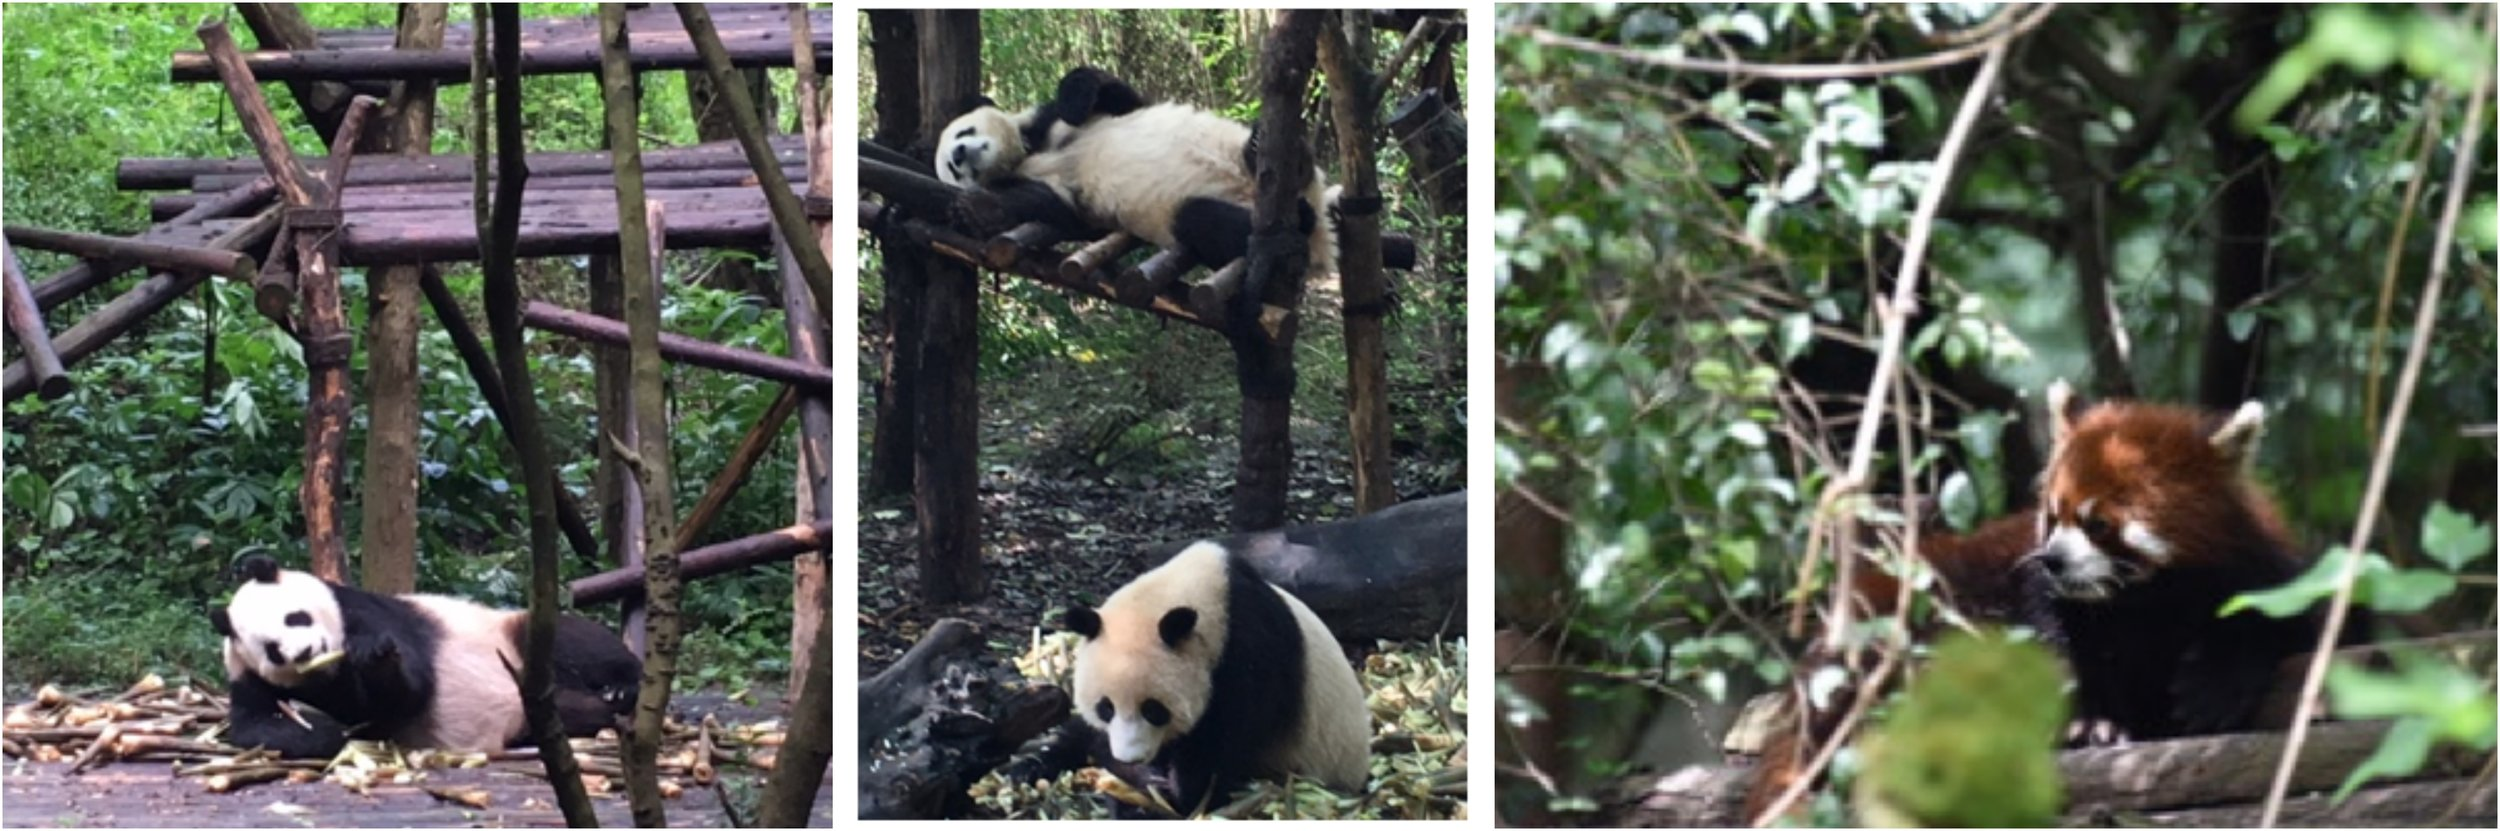 Chengdu and the Panda Reserve.jpg